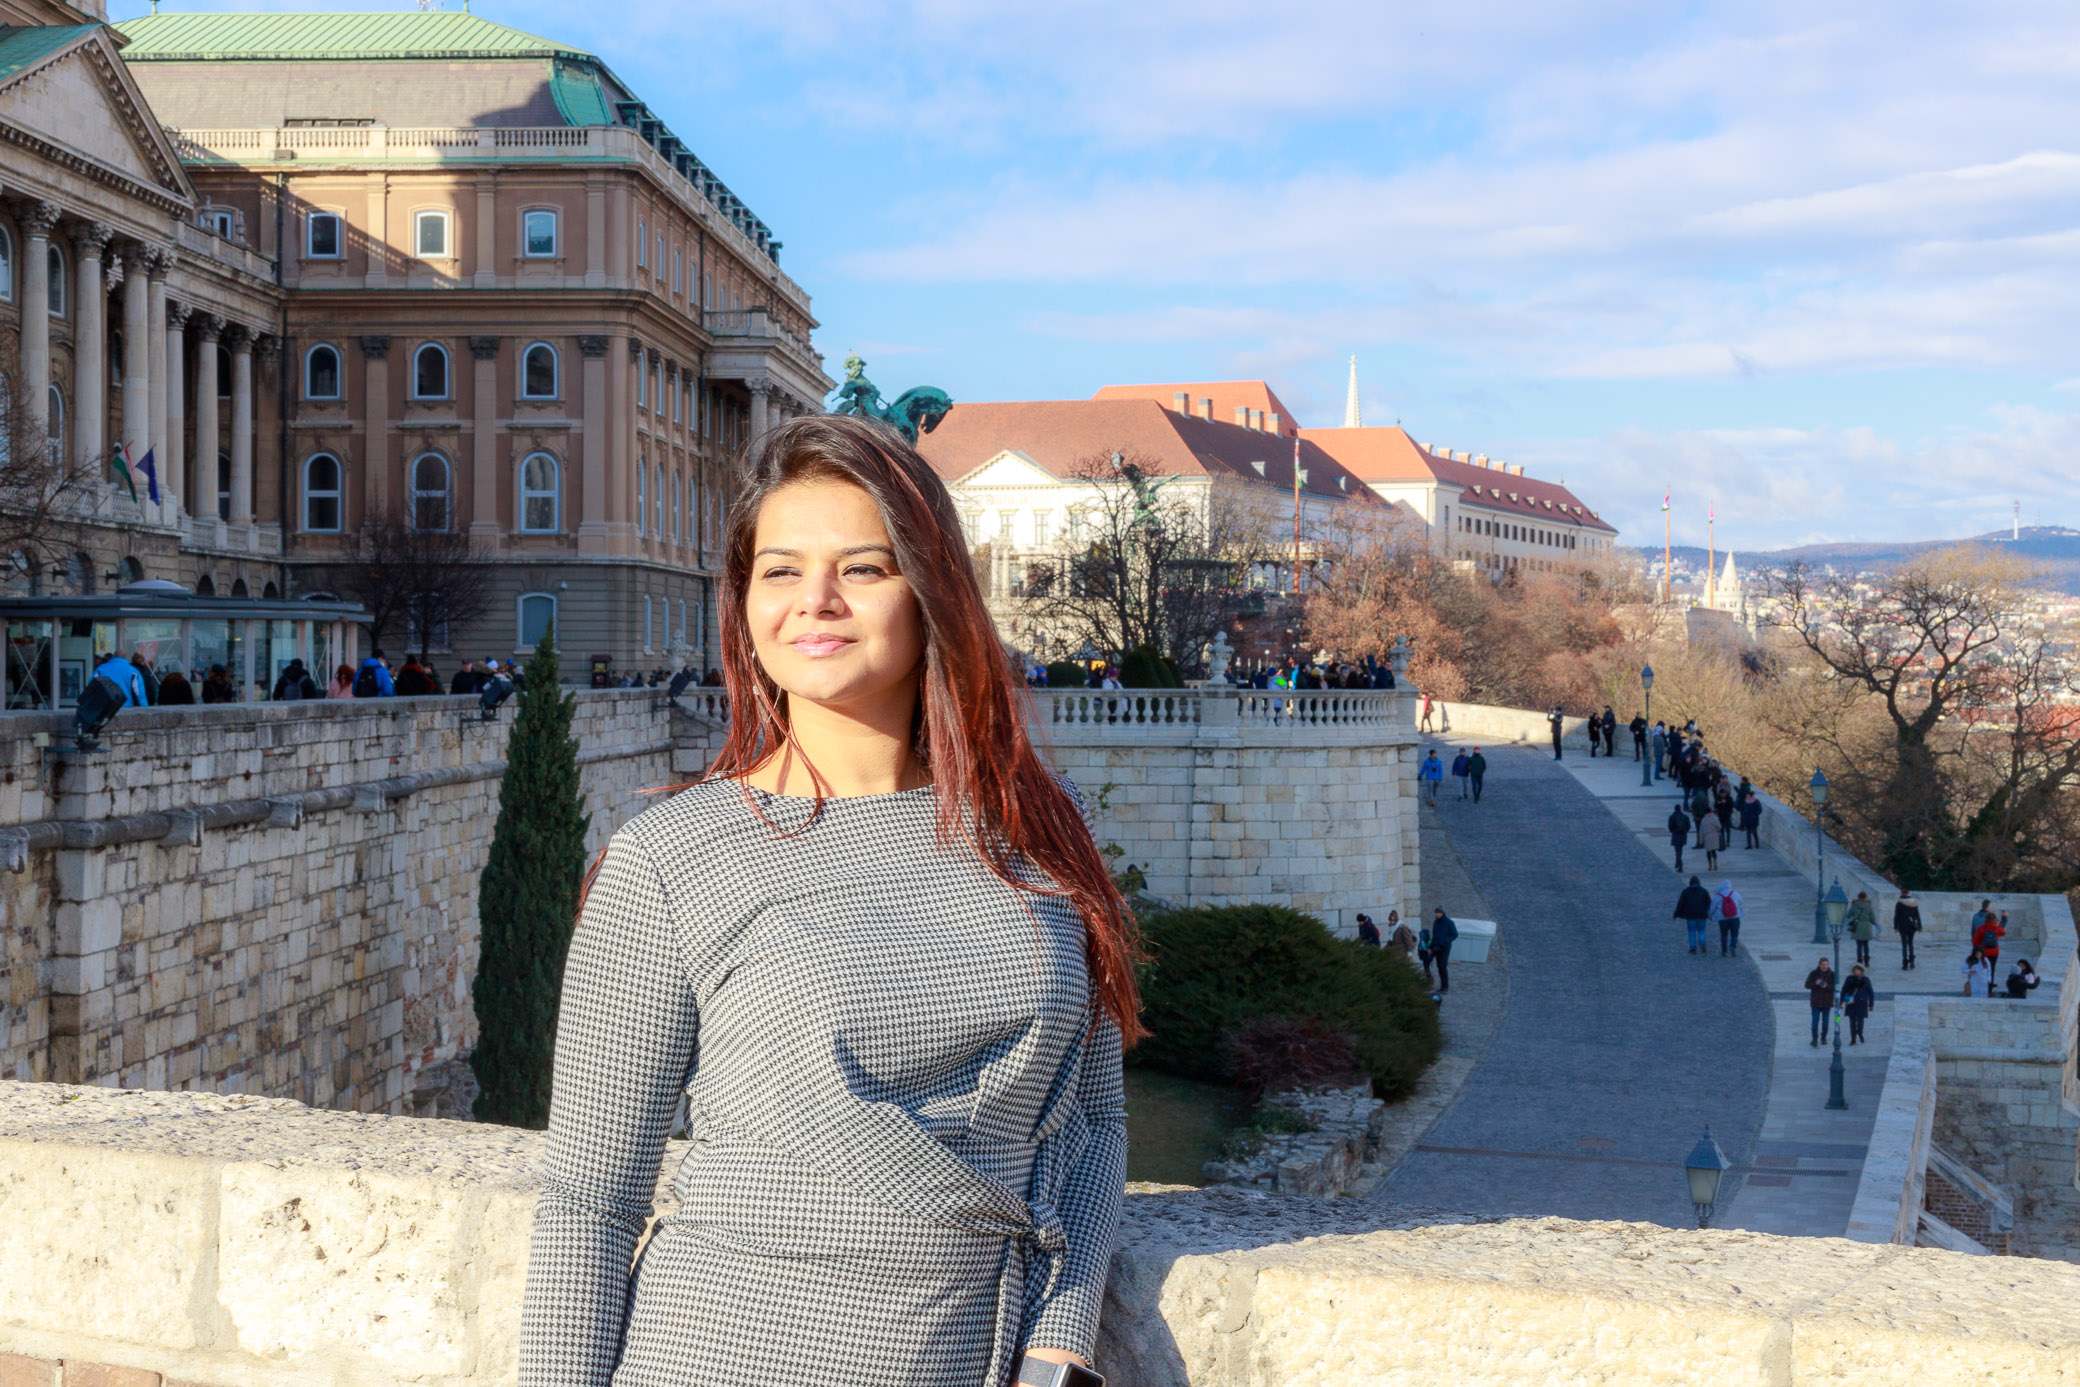 Megan at Buda Castle